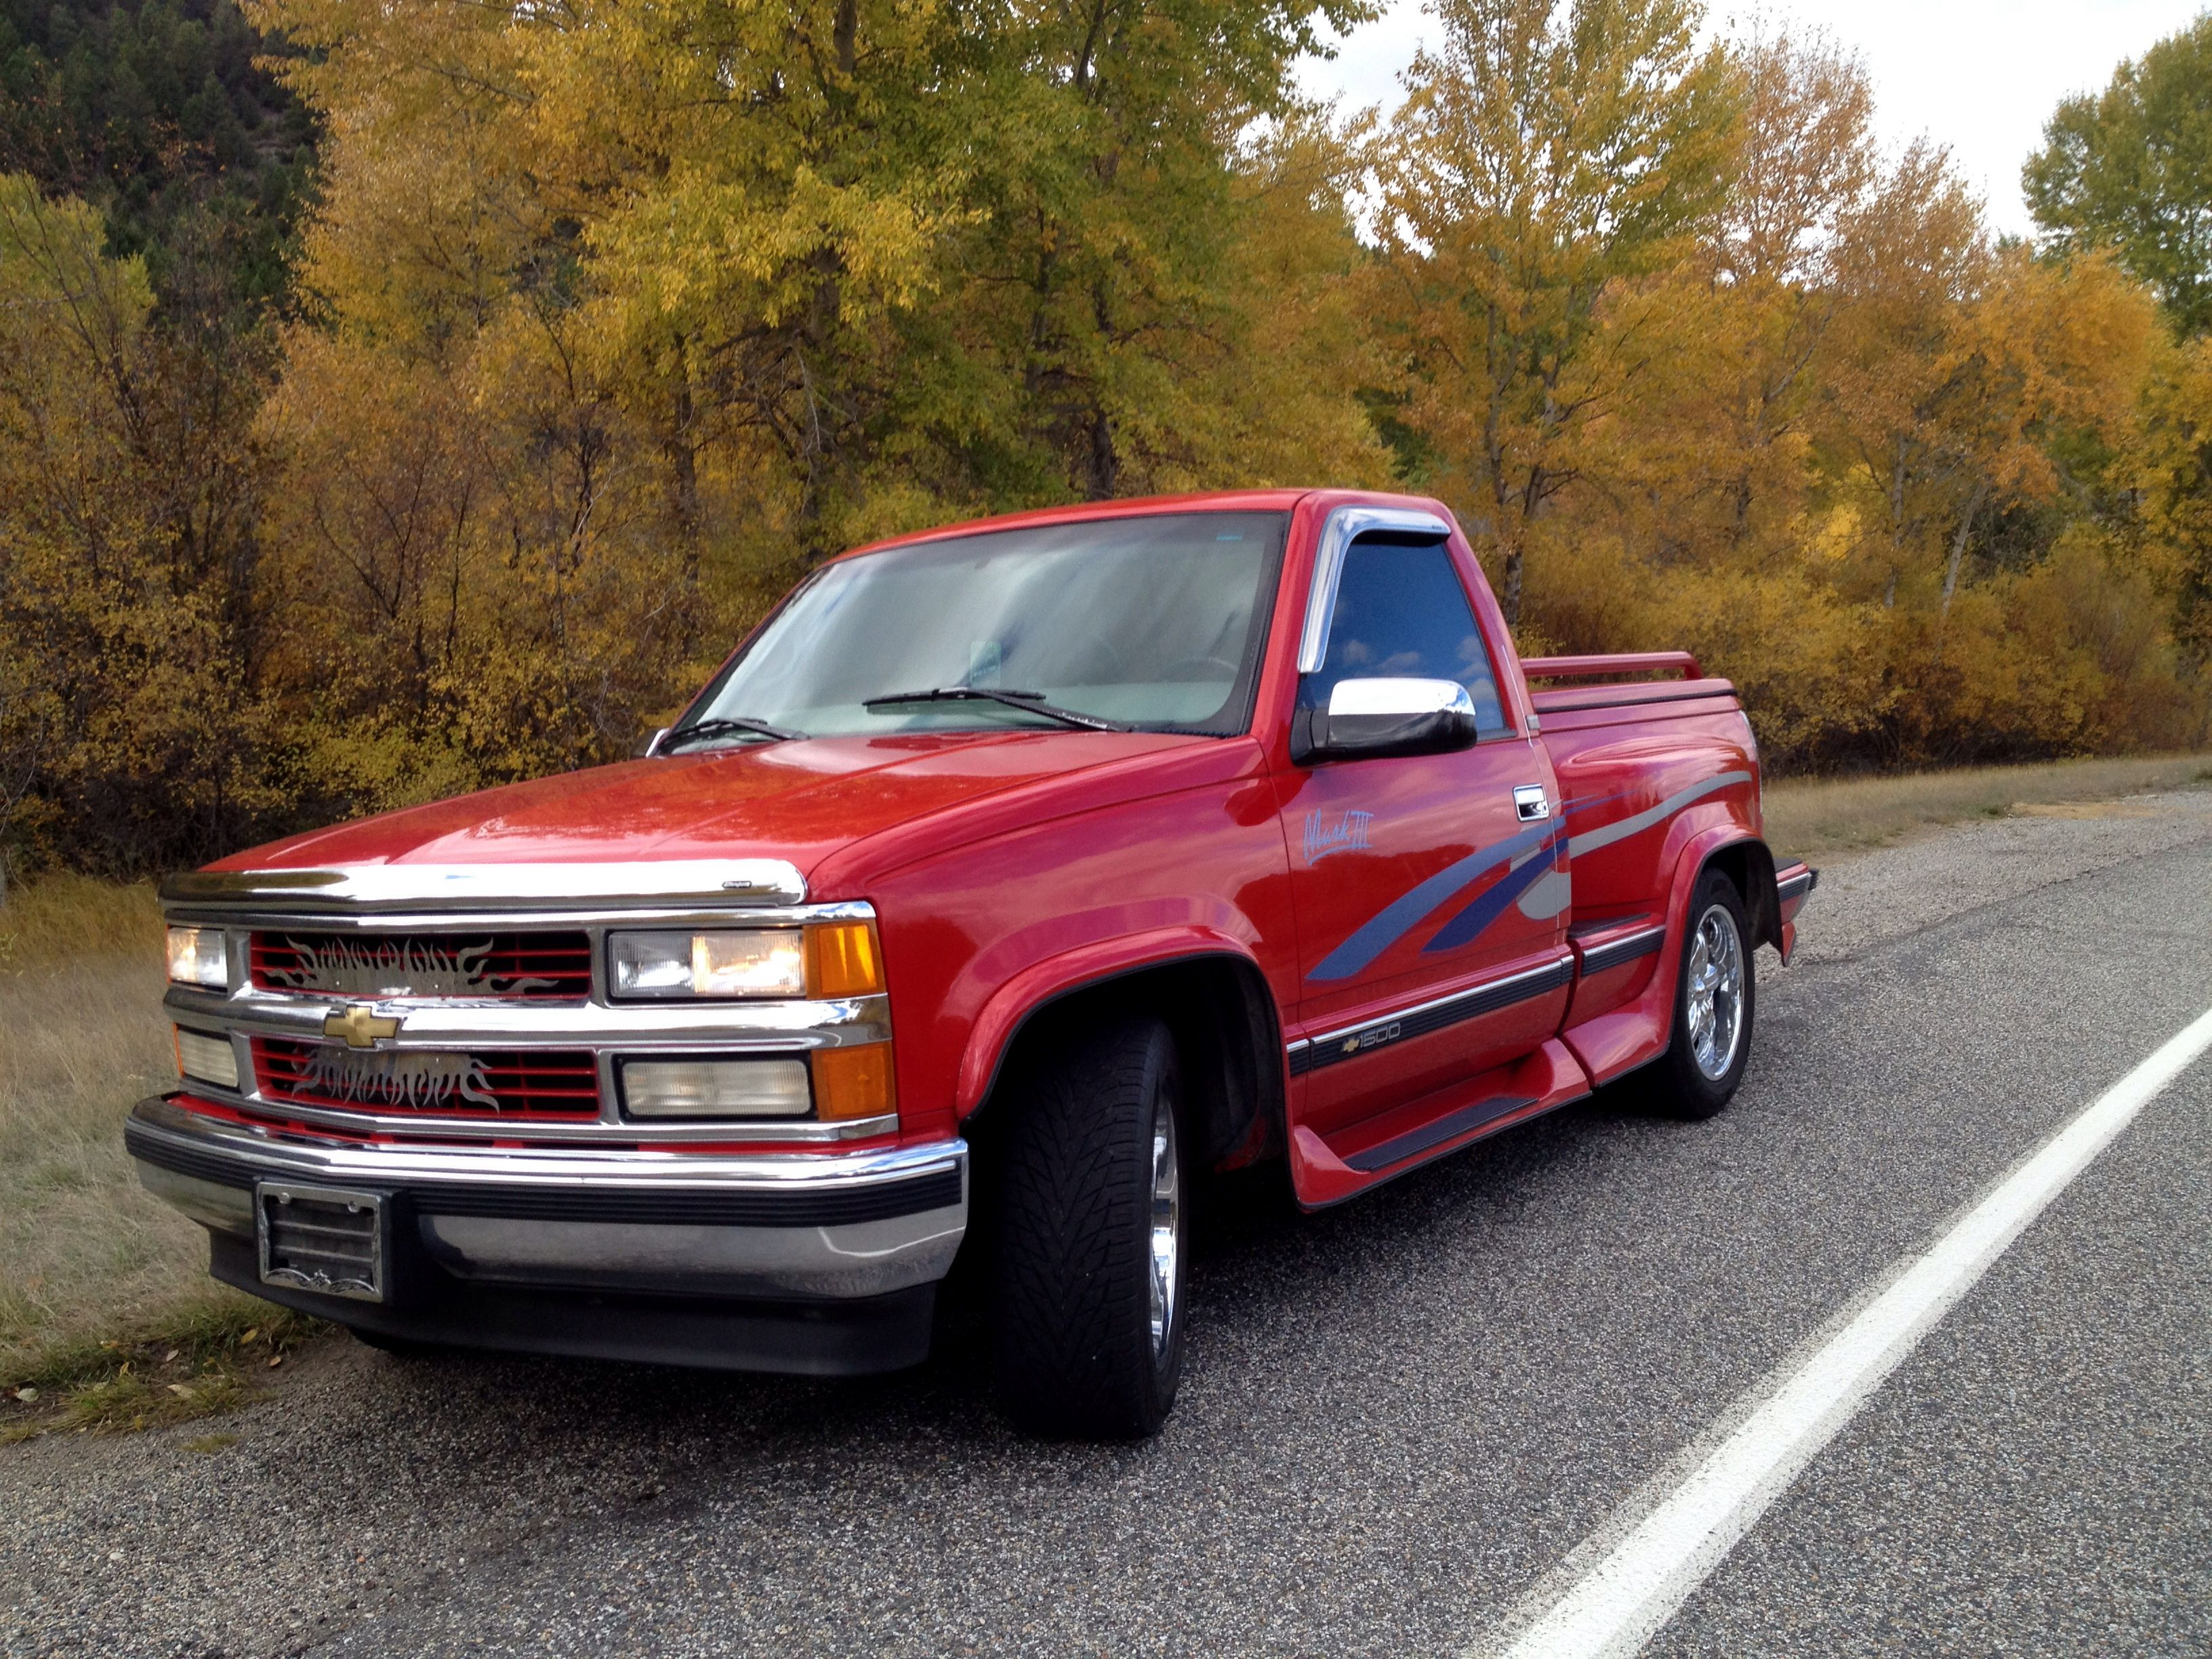 97 Chevy Silverado 1500 With 350 Vortec Motor And Mark Iii Package